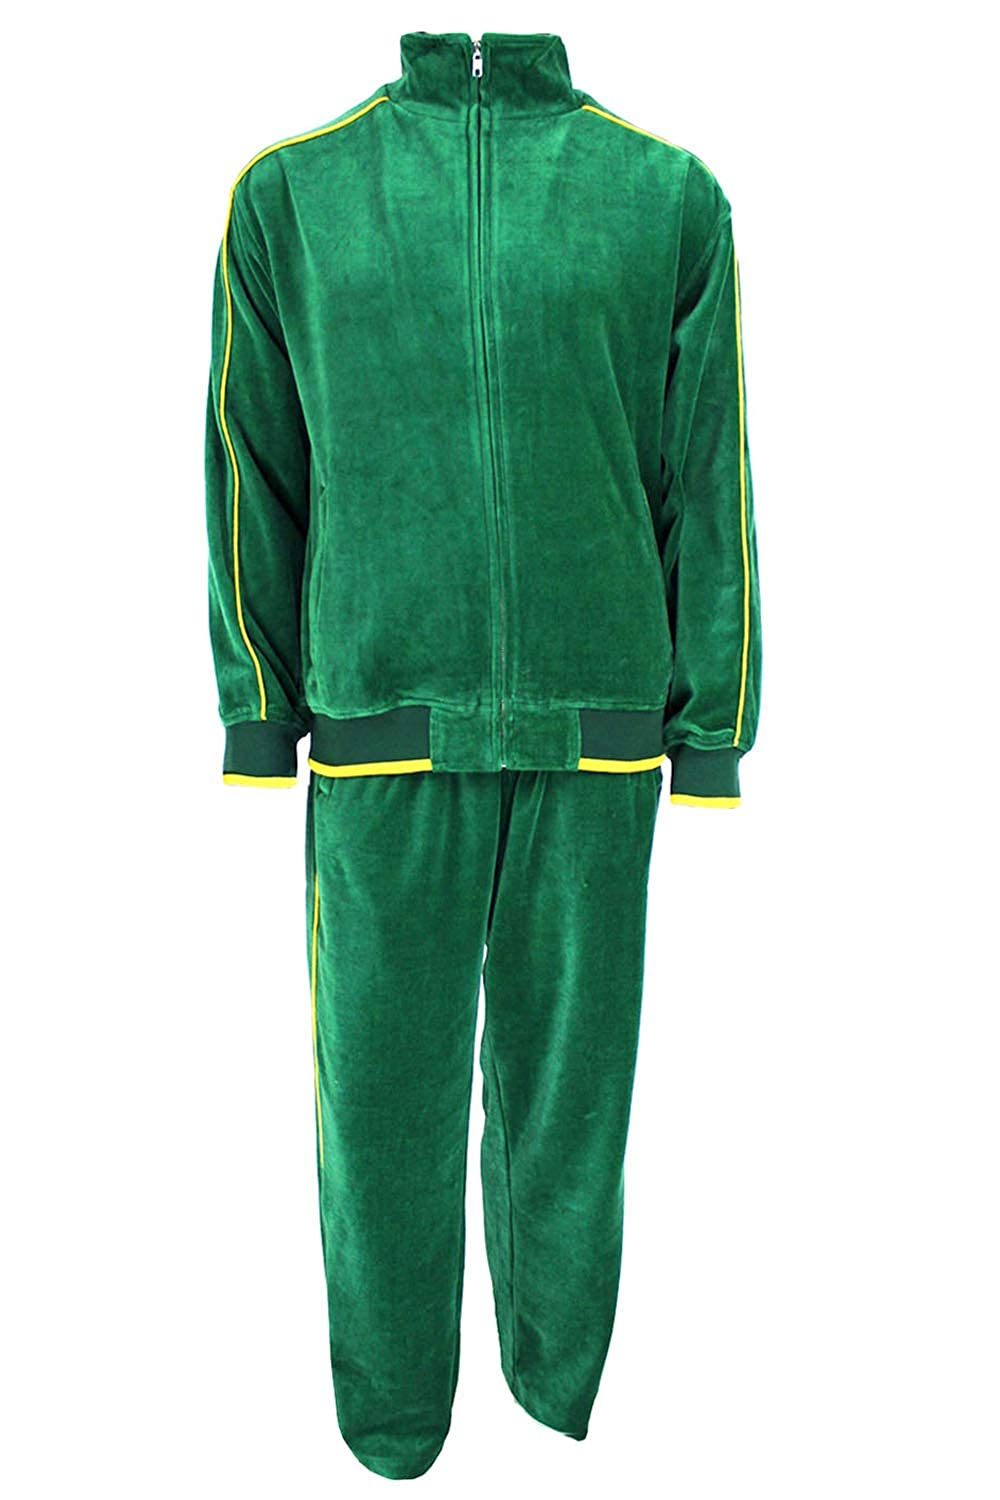 70s Workout Clothes | 80s Tracksuits, Running Shorts, Leotards Sweatsedo Mens Velour Tracksuit $129.00 AT vintagedancer.com